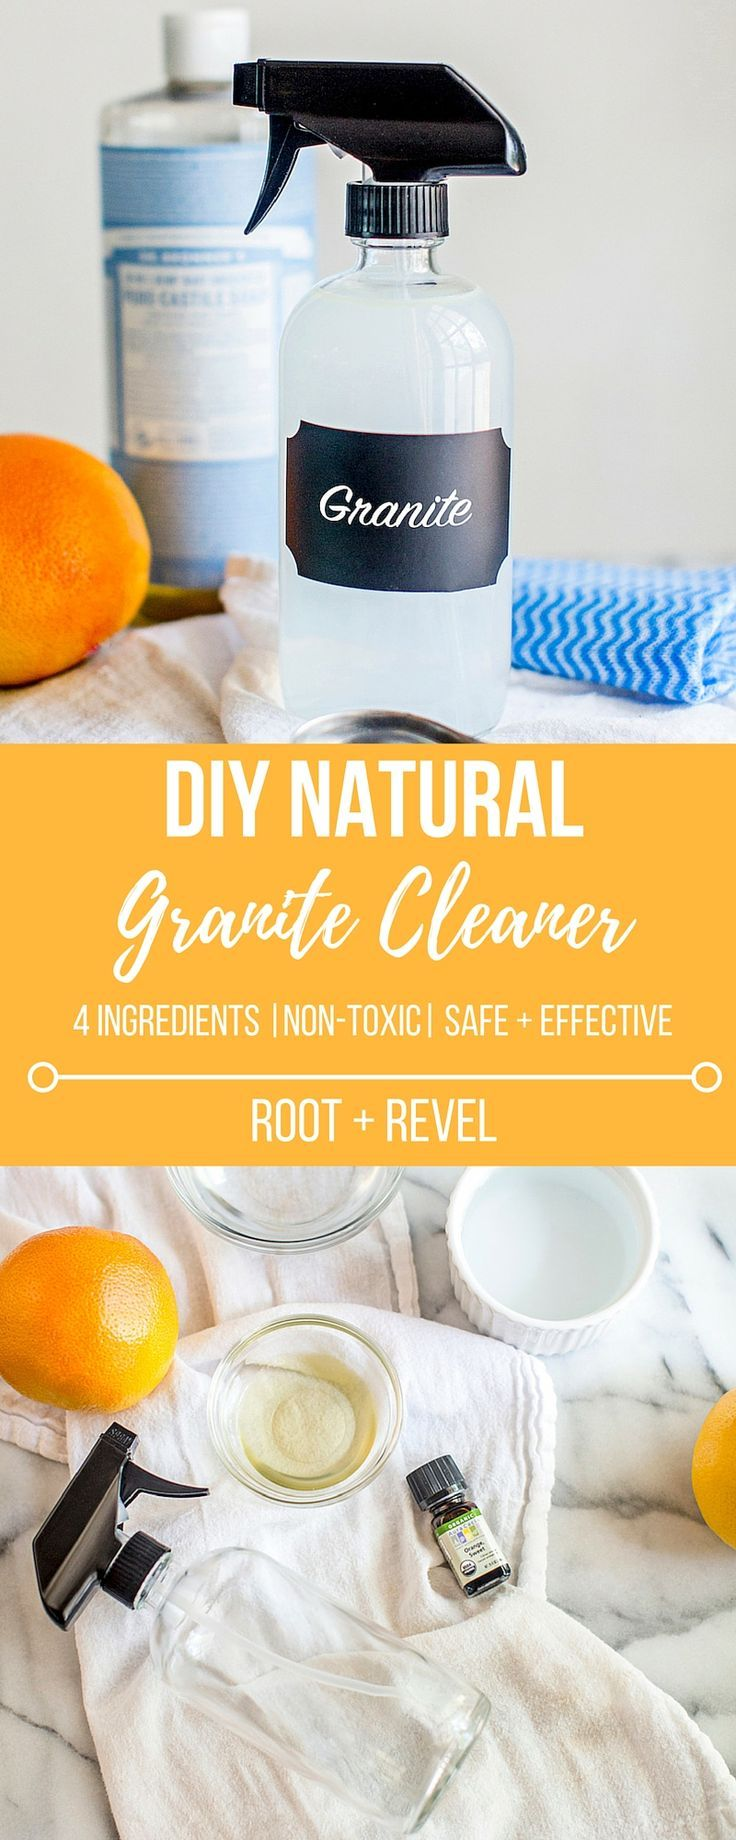 With just 4 ingredients, this DIY Natural Granite Cleaner Spray, made without vinegar, will clean and disinfect your countertops. The homemade recipe is best for organic housekeeping and those looking for safe, non-toxic cleaning options. And it smells am